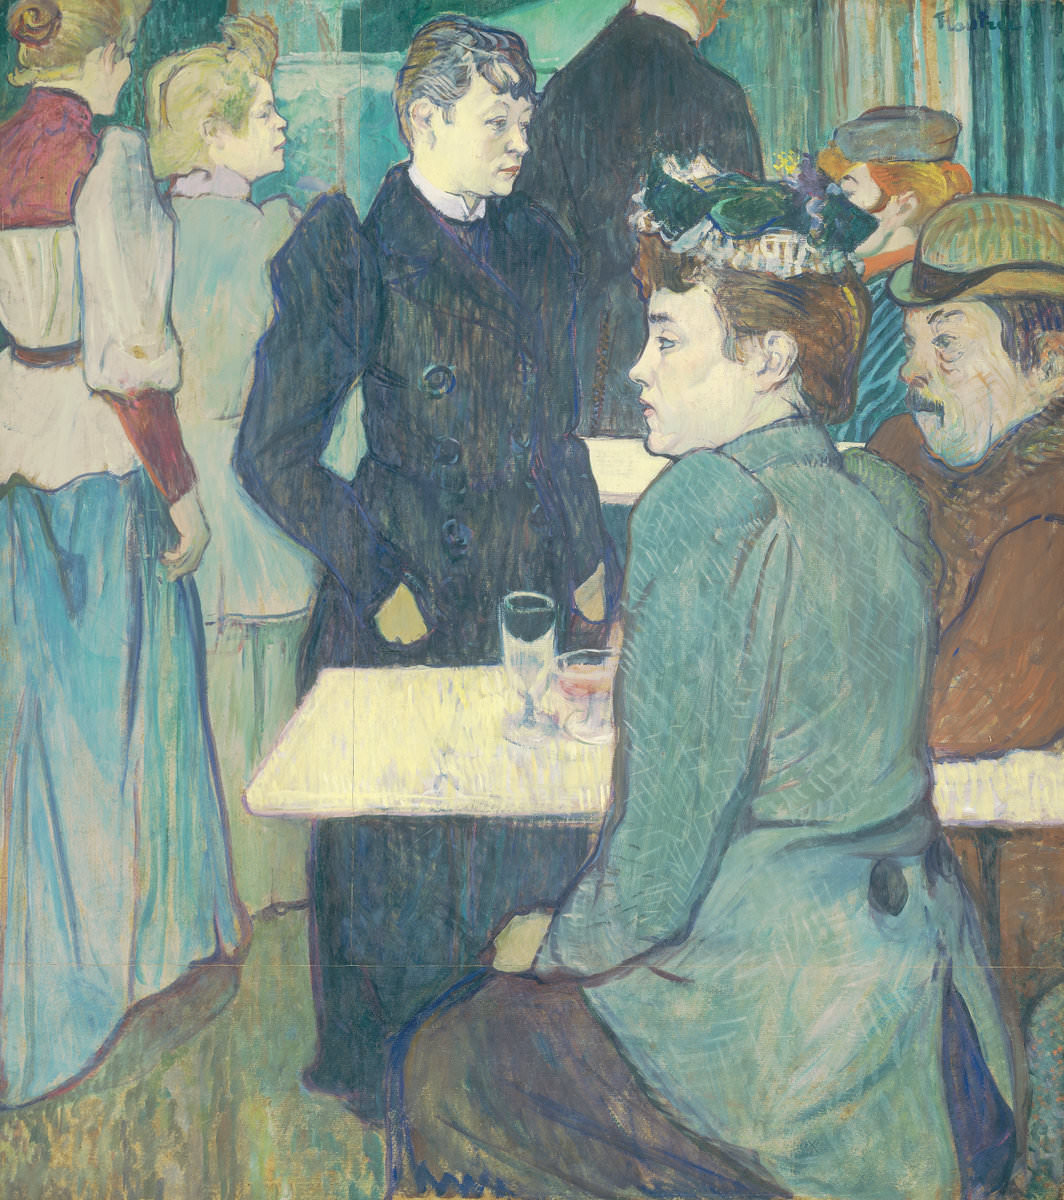 Fig. 10 – Um Canto no Moulin de La Galette, Henri de Toulouse-Lautrec, 1892. National Gallery of Art, Washington. Chester Dale Coleção.